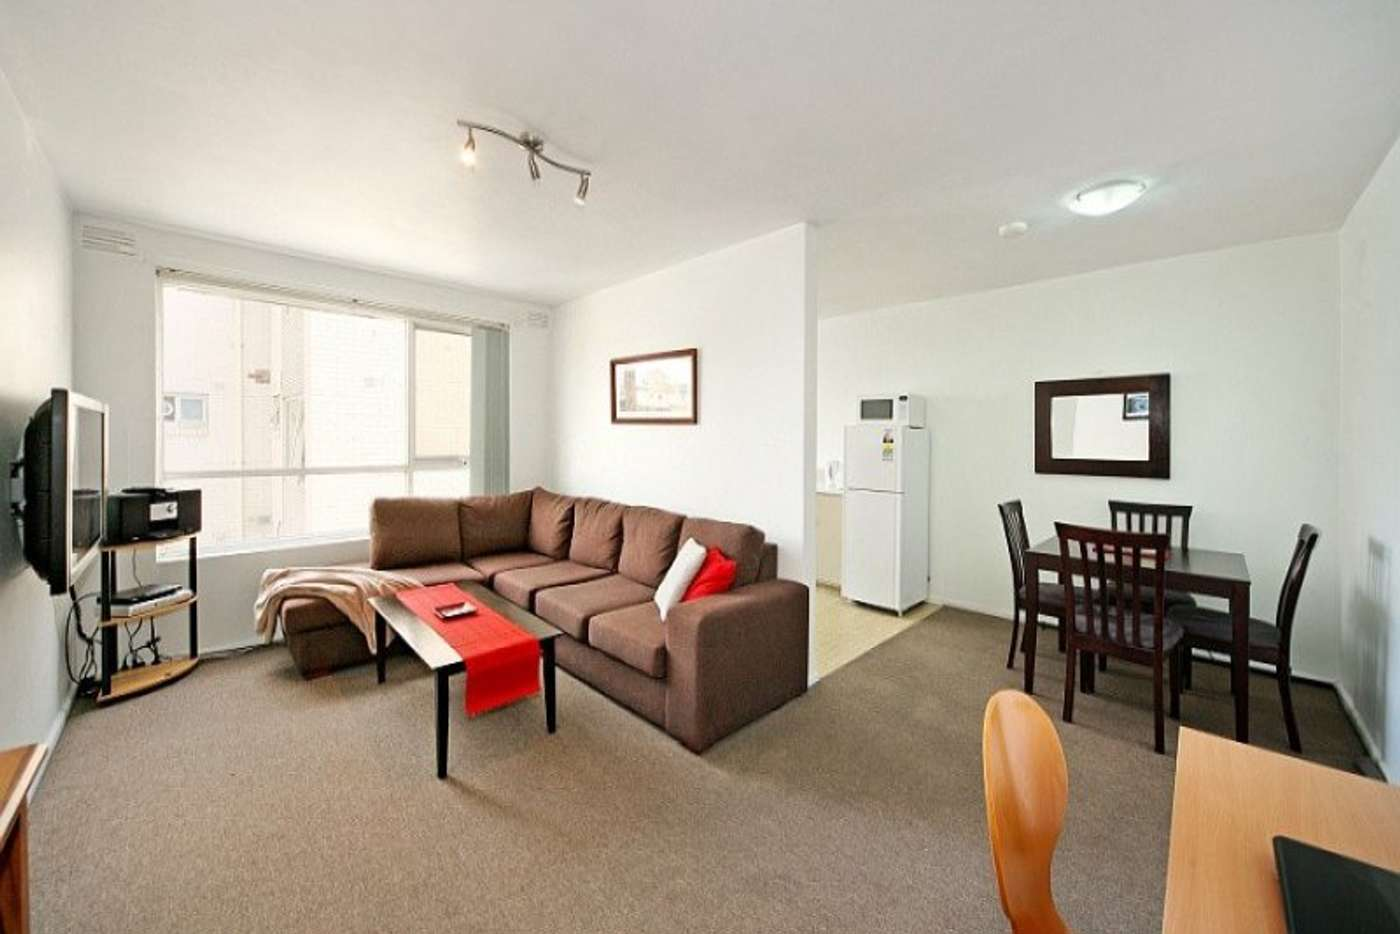 Main view of Homely apartment listing, 11/16 Normanby Street, Prahran VIC 3181